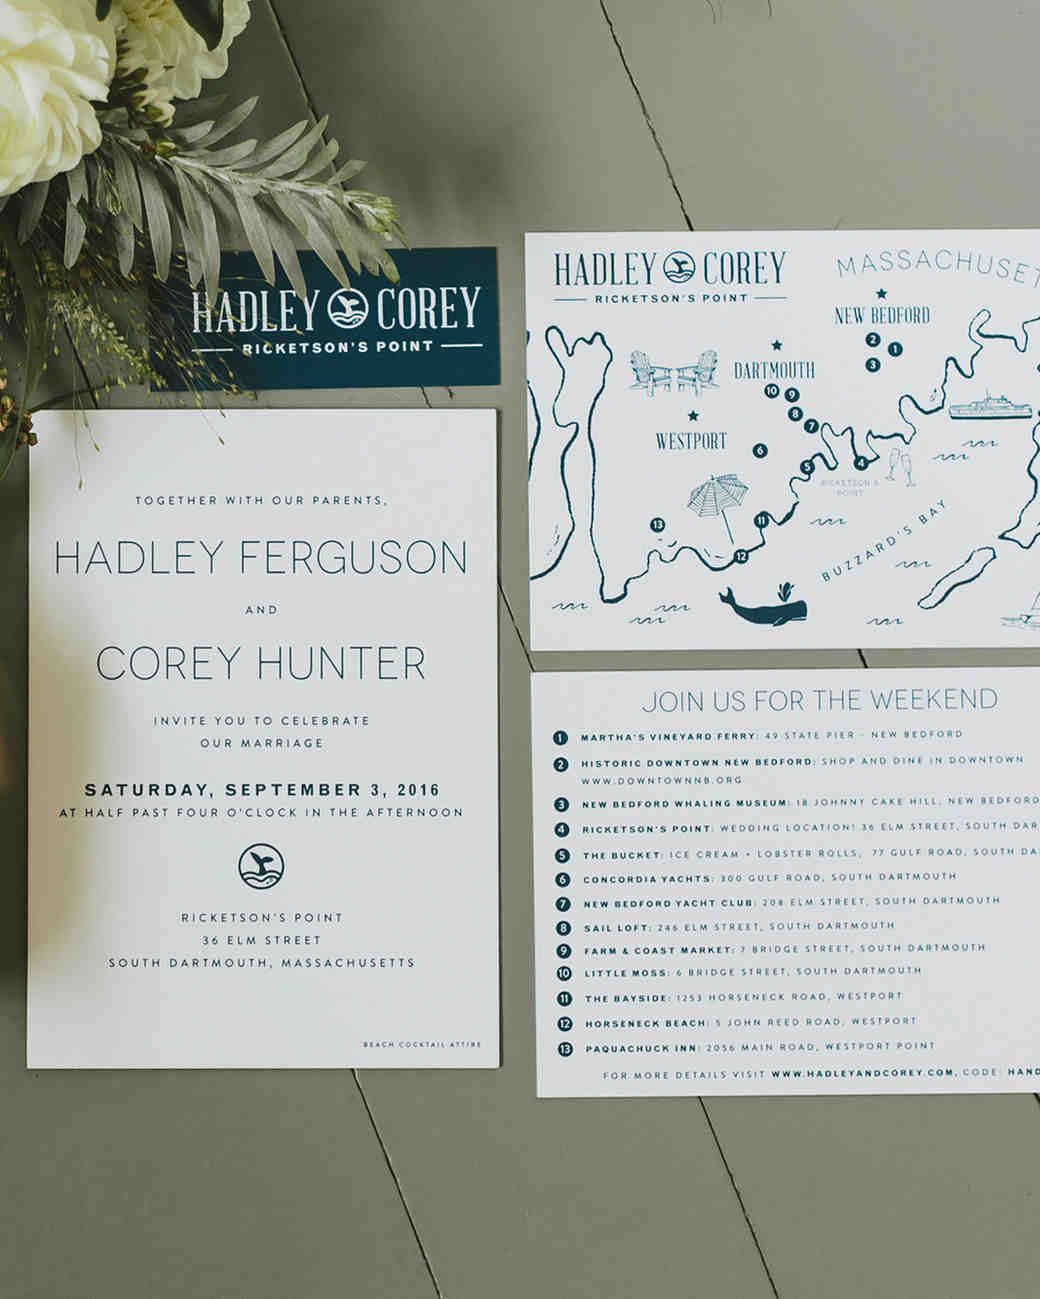 hadley corey wedding stationery